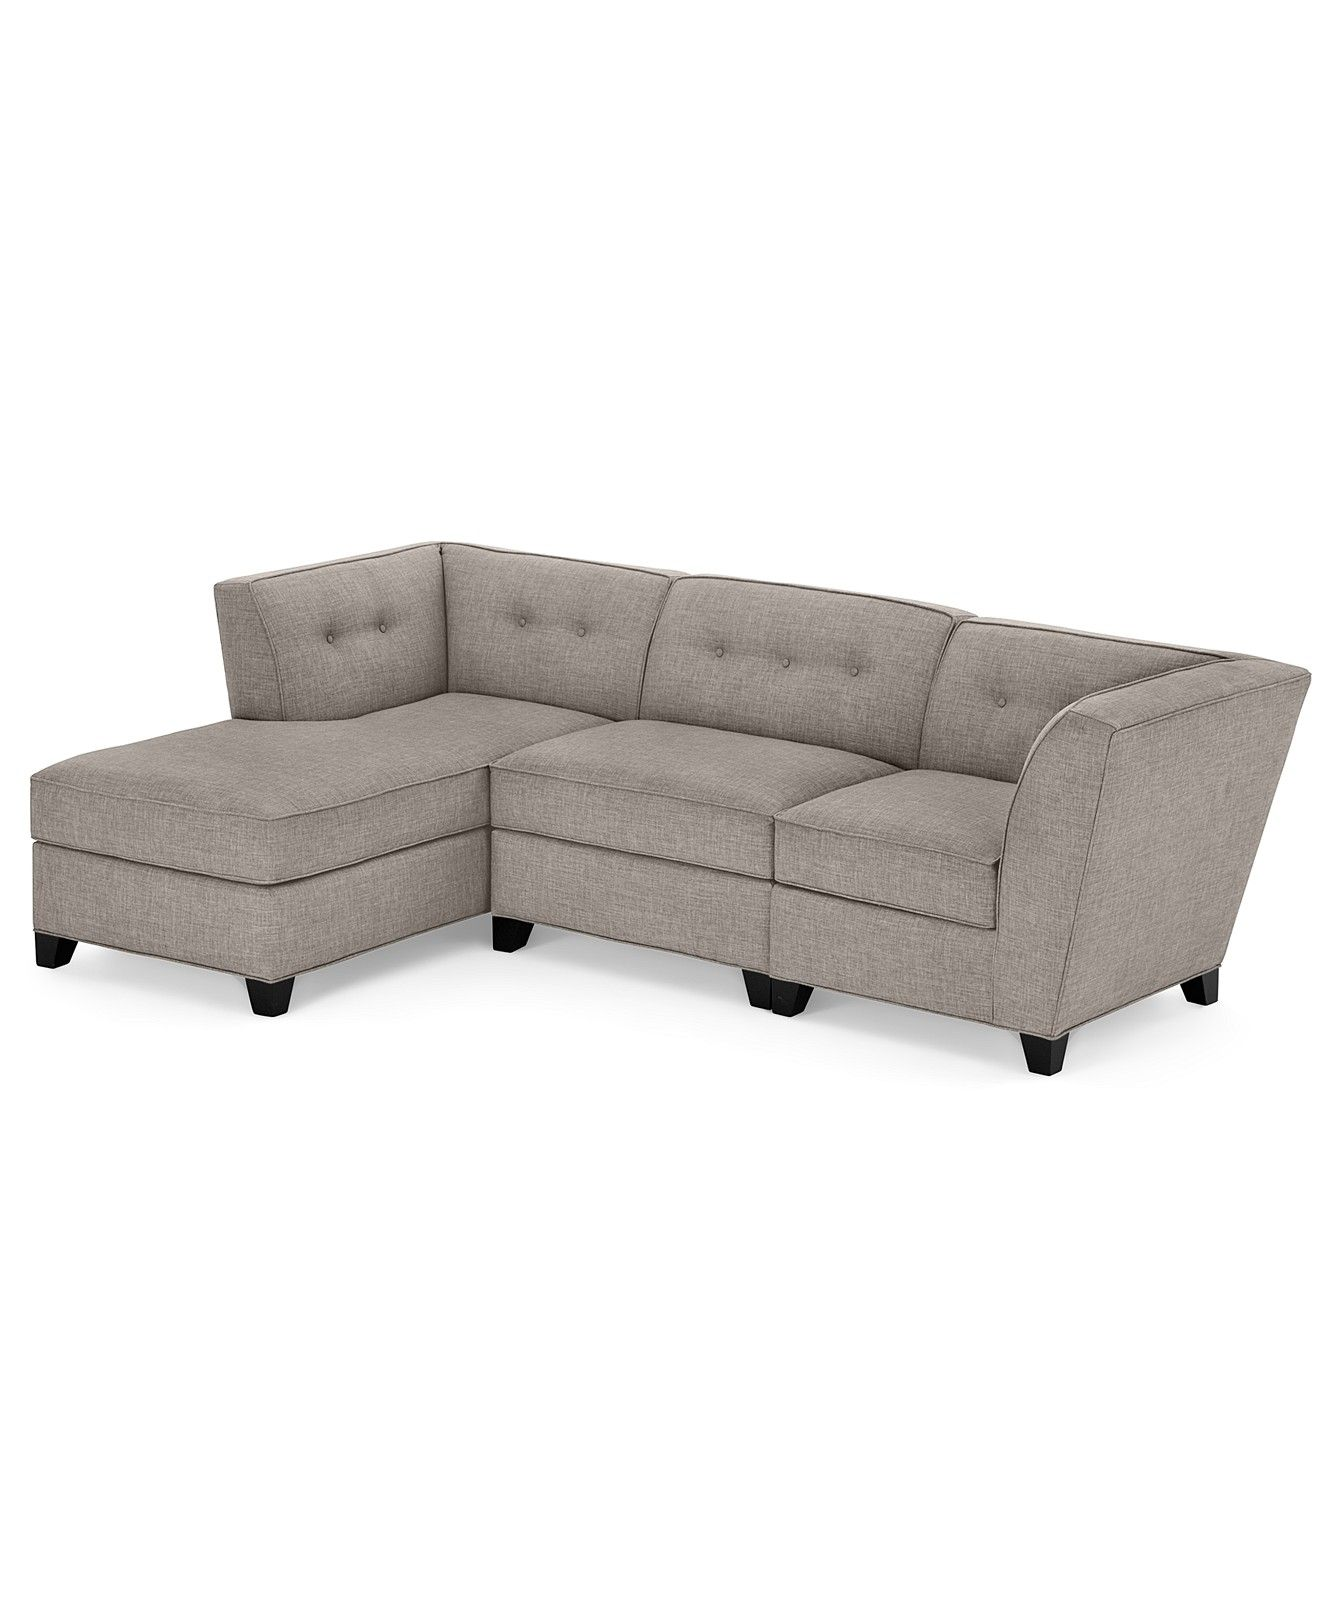 Harper Fabric 3 Piece Modular Sectional Sofa Sectional Sofas